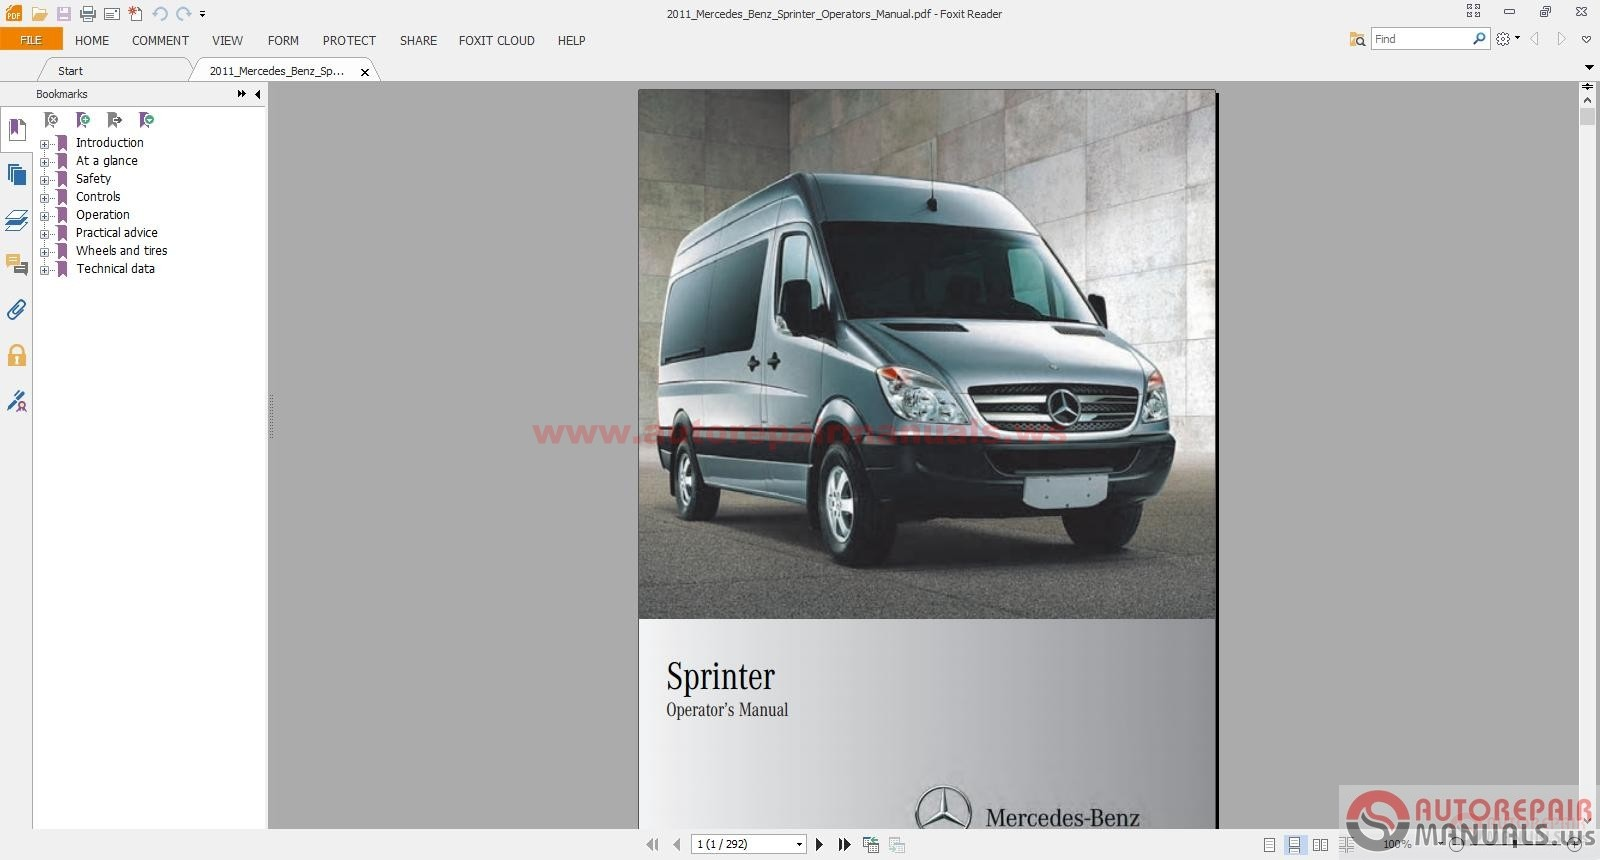 Service manual auto repair manual free download 2011 for Mercedes benz online repair manual